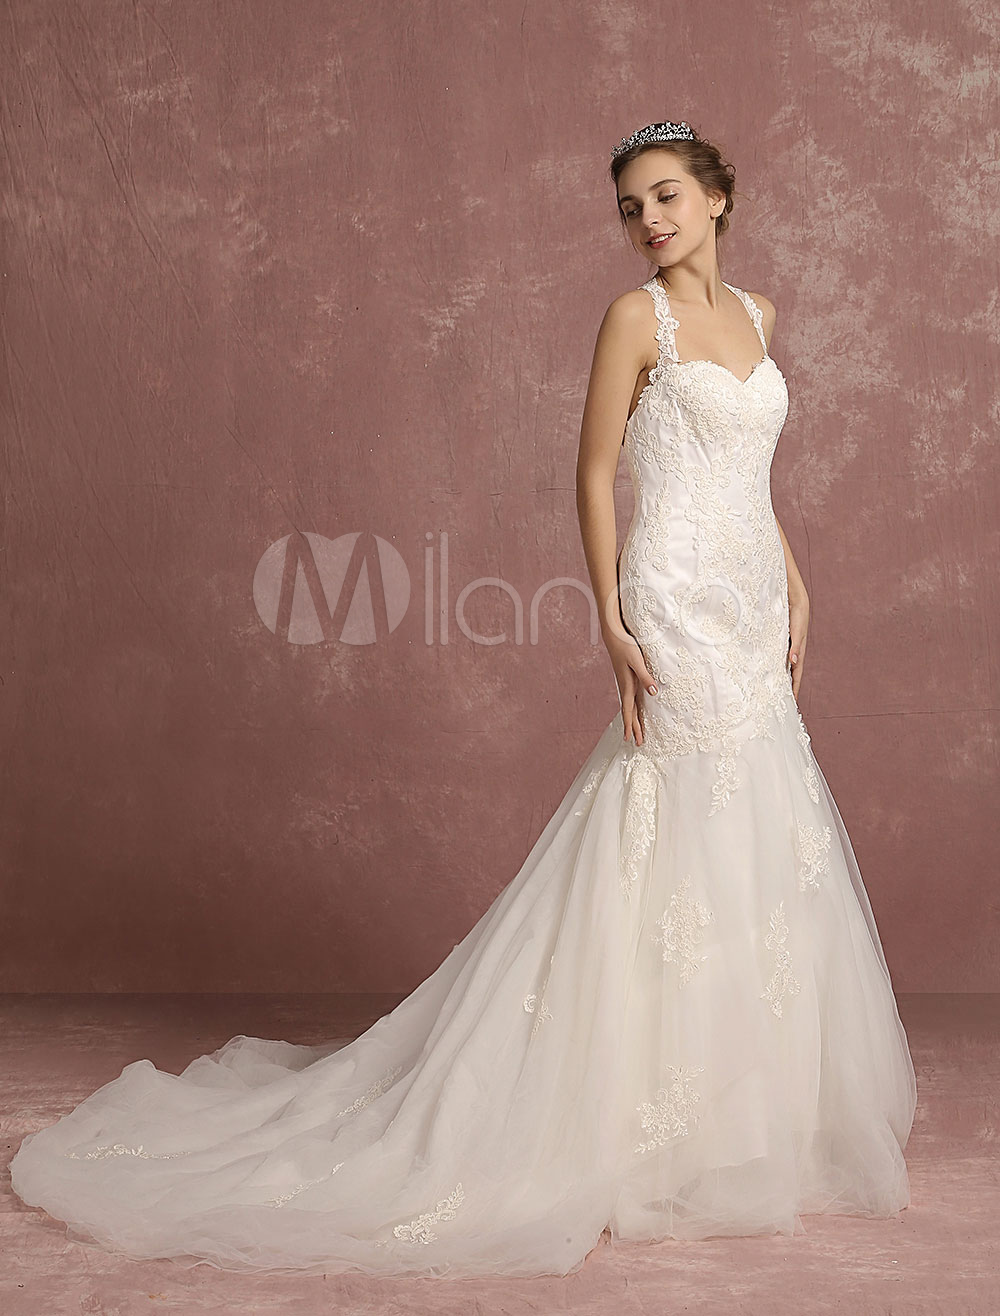 Lace Wedding Dress Mermaid Halter Backless Bridal Gown Sweetheart Sleeveless Chapel Train Ivory Bridal Dress